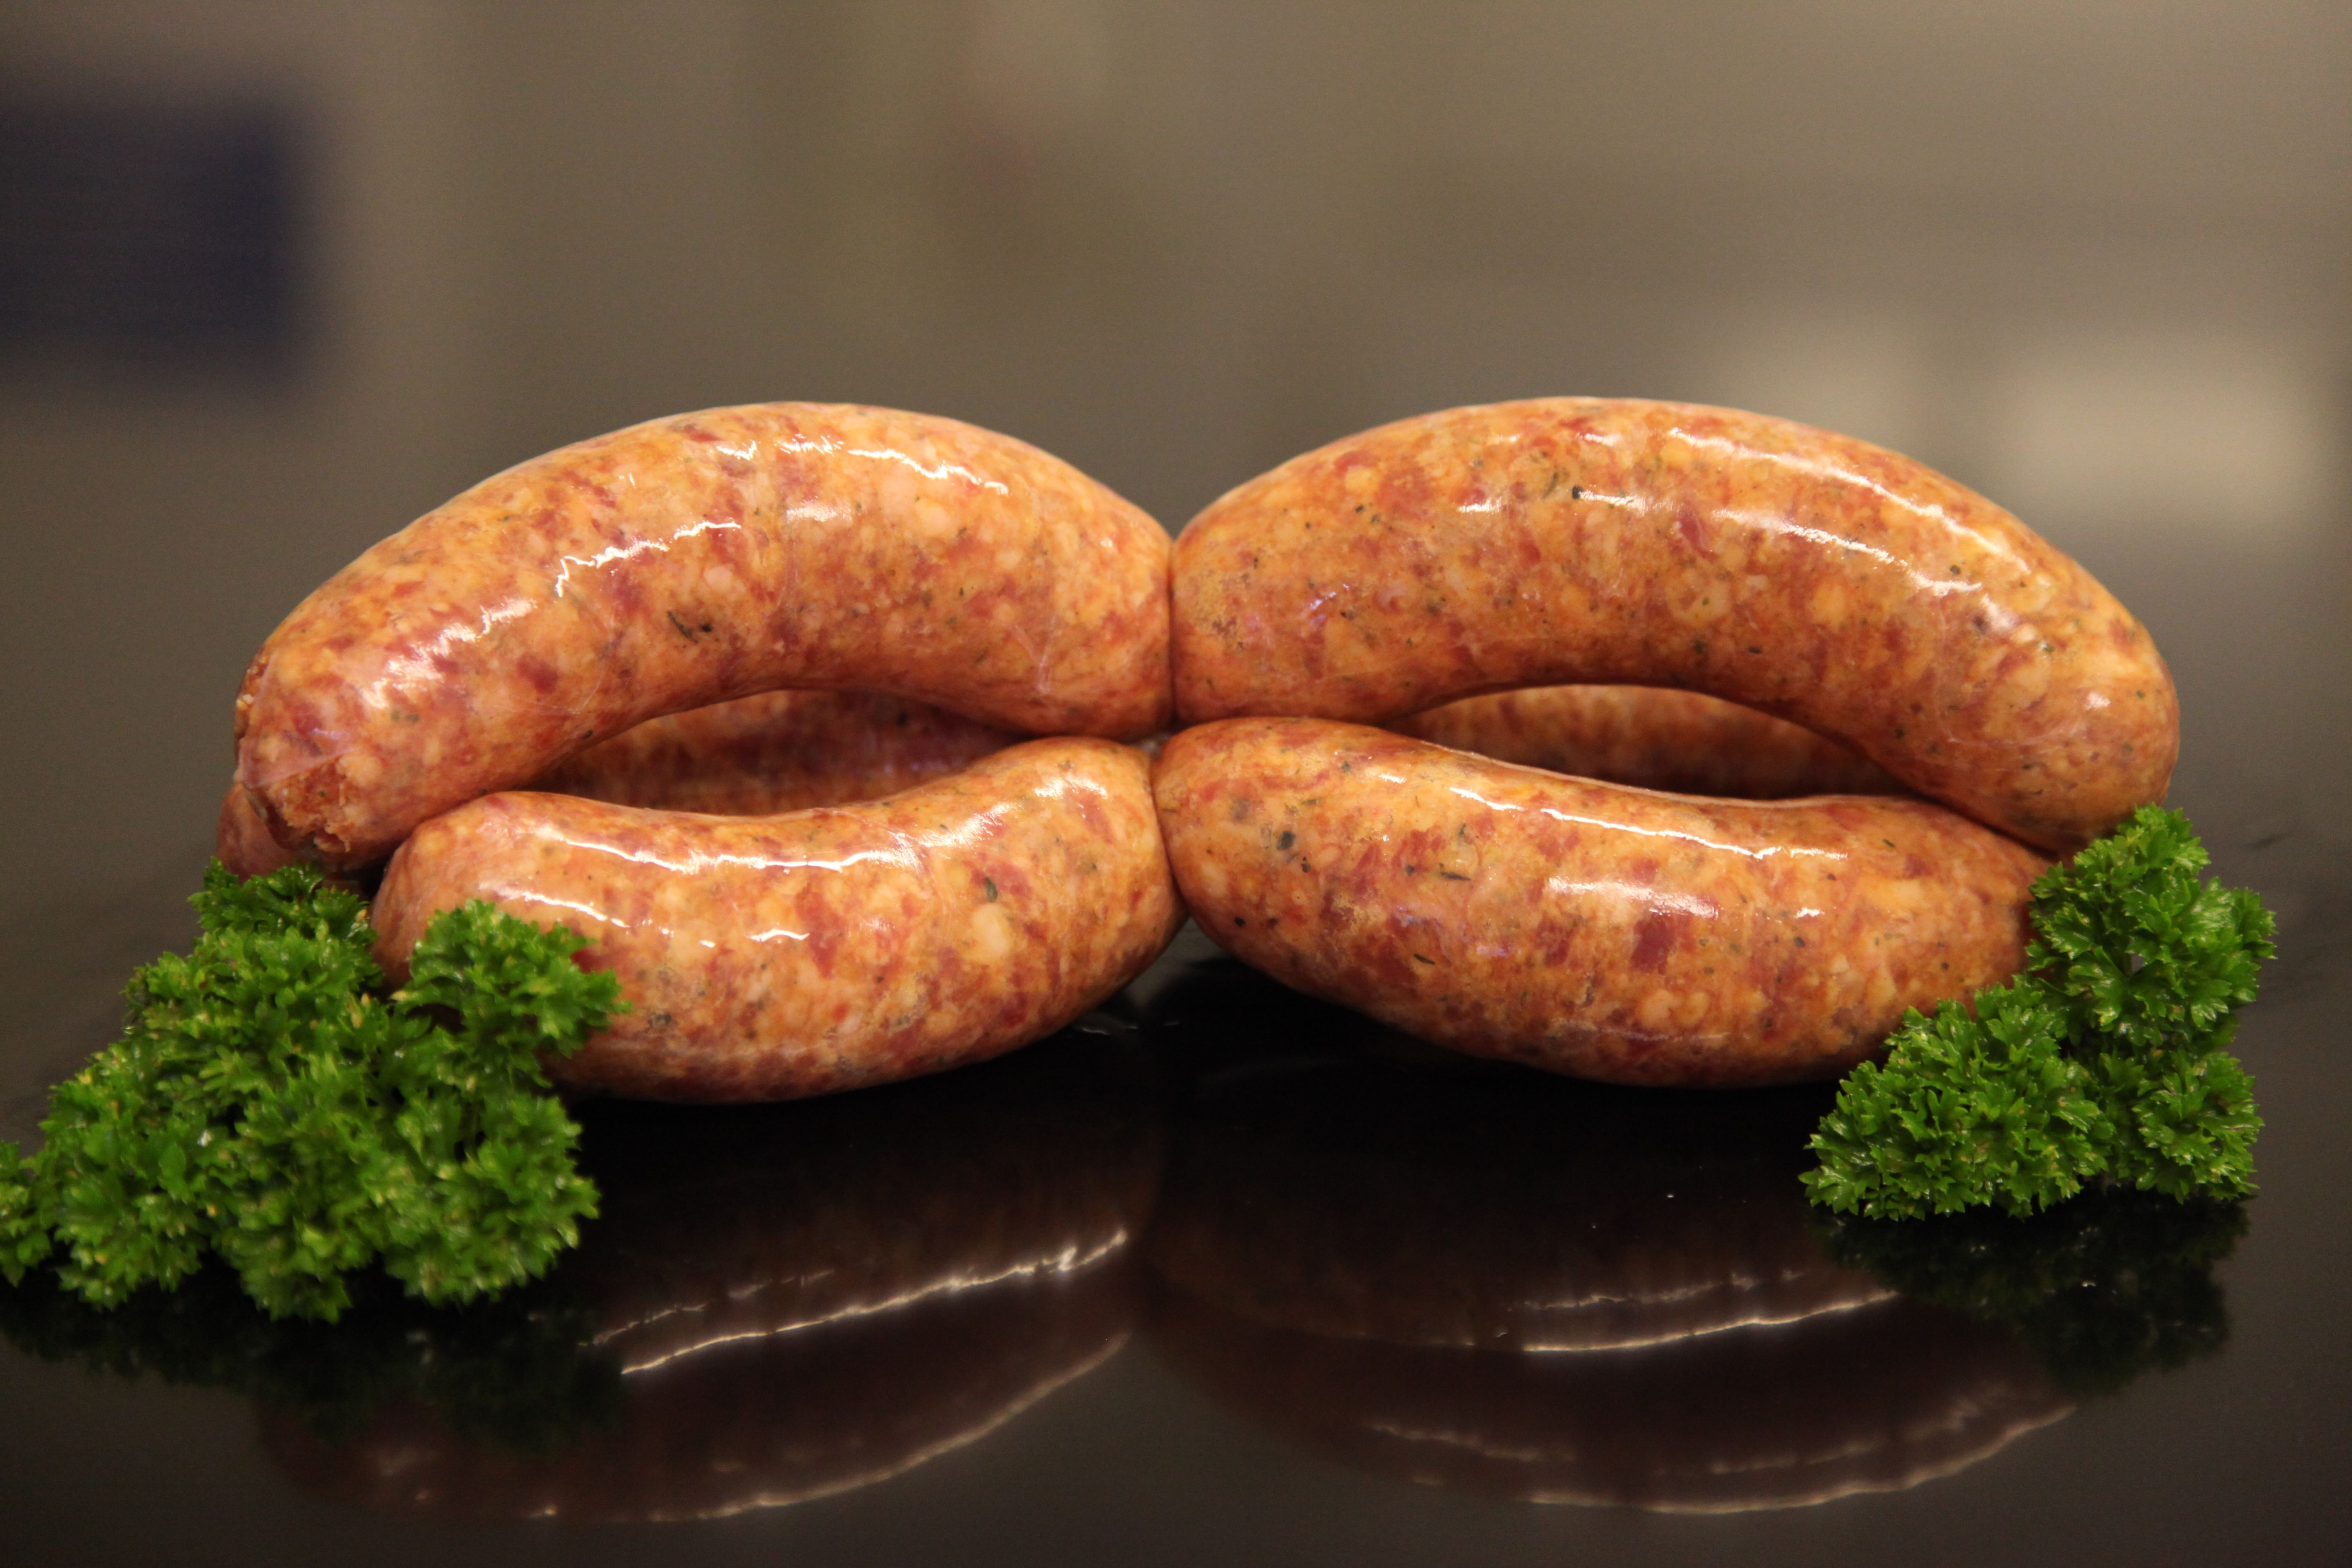 Boerwors Style Sausages